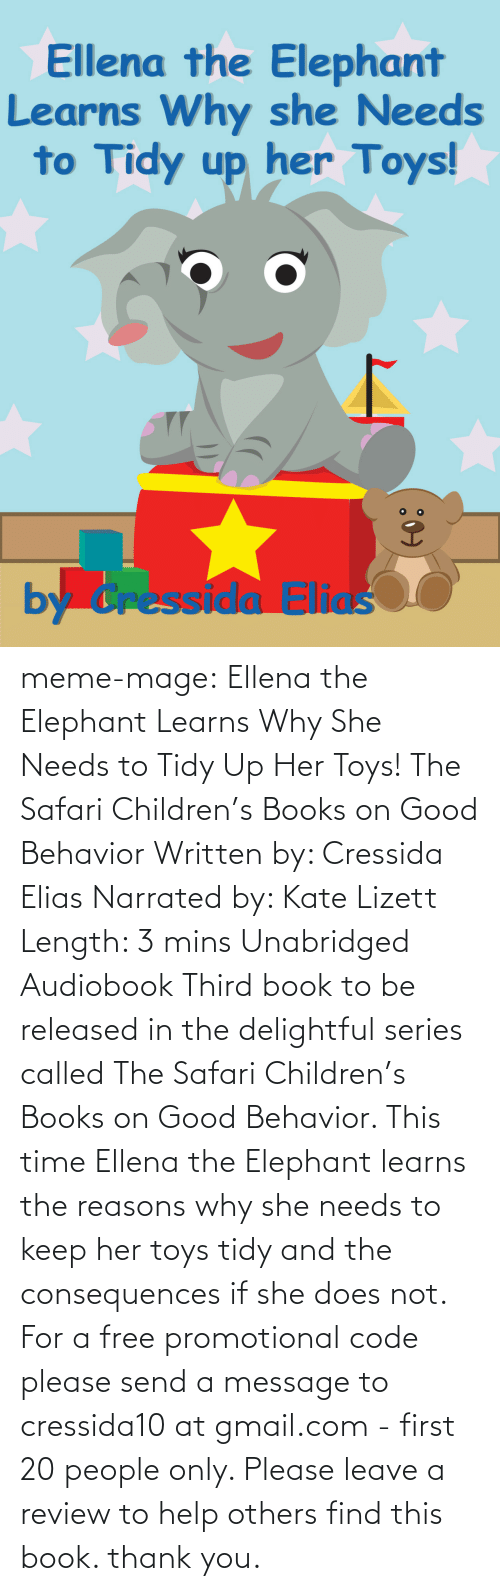 meme: Ellena the Elephant  Learns Why she Needs  to Tidy up her Toys!  by Cressida Elias meme-mage:    Ellena the Elephant Learns Why She Needs to Tidy Up Her Toys! The Safari Children's Books on Good Behavior   Written by: Cressida Elias  Narrated by: Kate Lizett  Length: 3 mins Unabridged Audiobook Third book to be released in the delightful series called The Safari Children's Books on Good Behavior. This time Ellena the Elephant learns the reasons why she needs to keep her toys tidy and the consequences if she does not.     For a free promotional code please send a message to cressida10 at gmail.com - first 20 people only. Please leave a review to help others find this book. thank you.